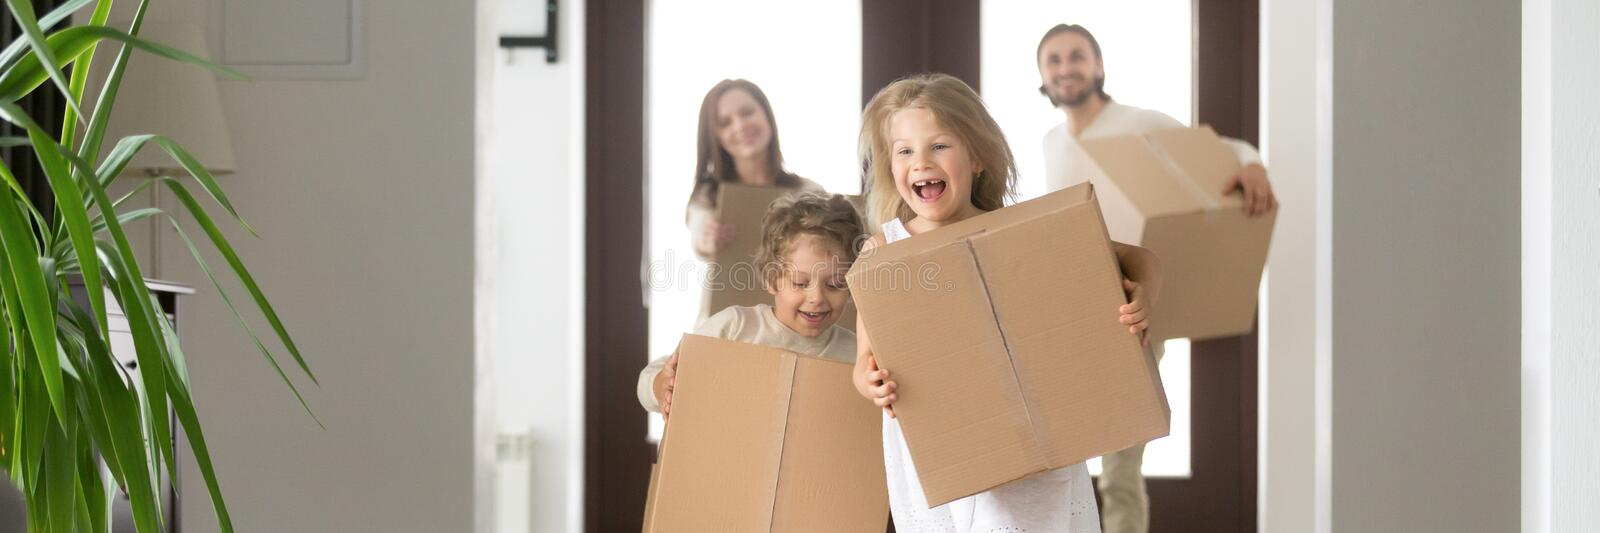 Couple and little kids with boxes running into new house stock image